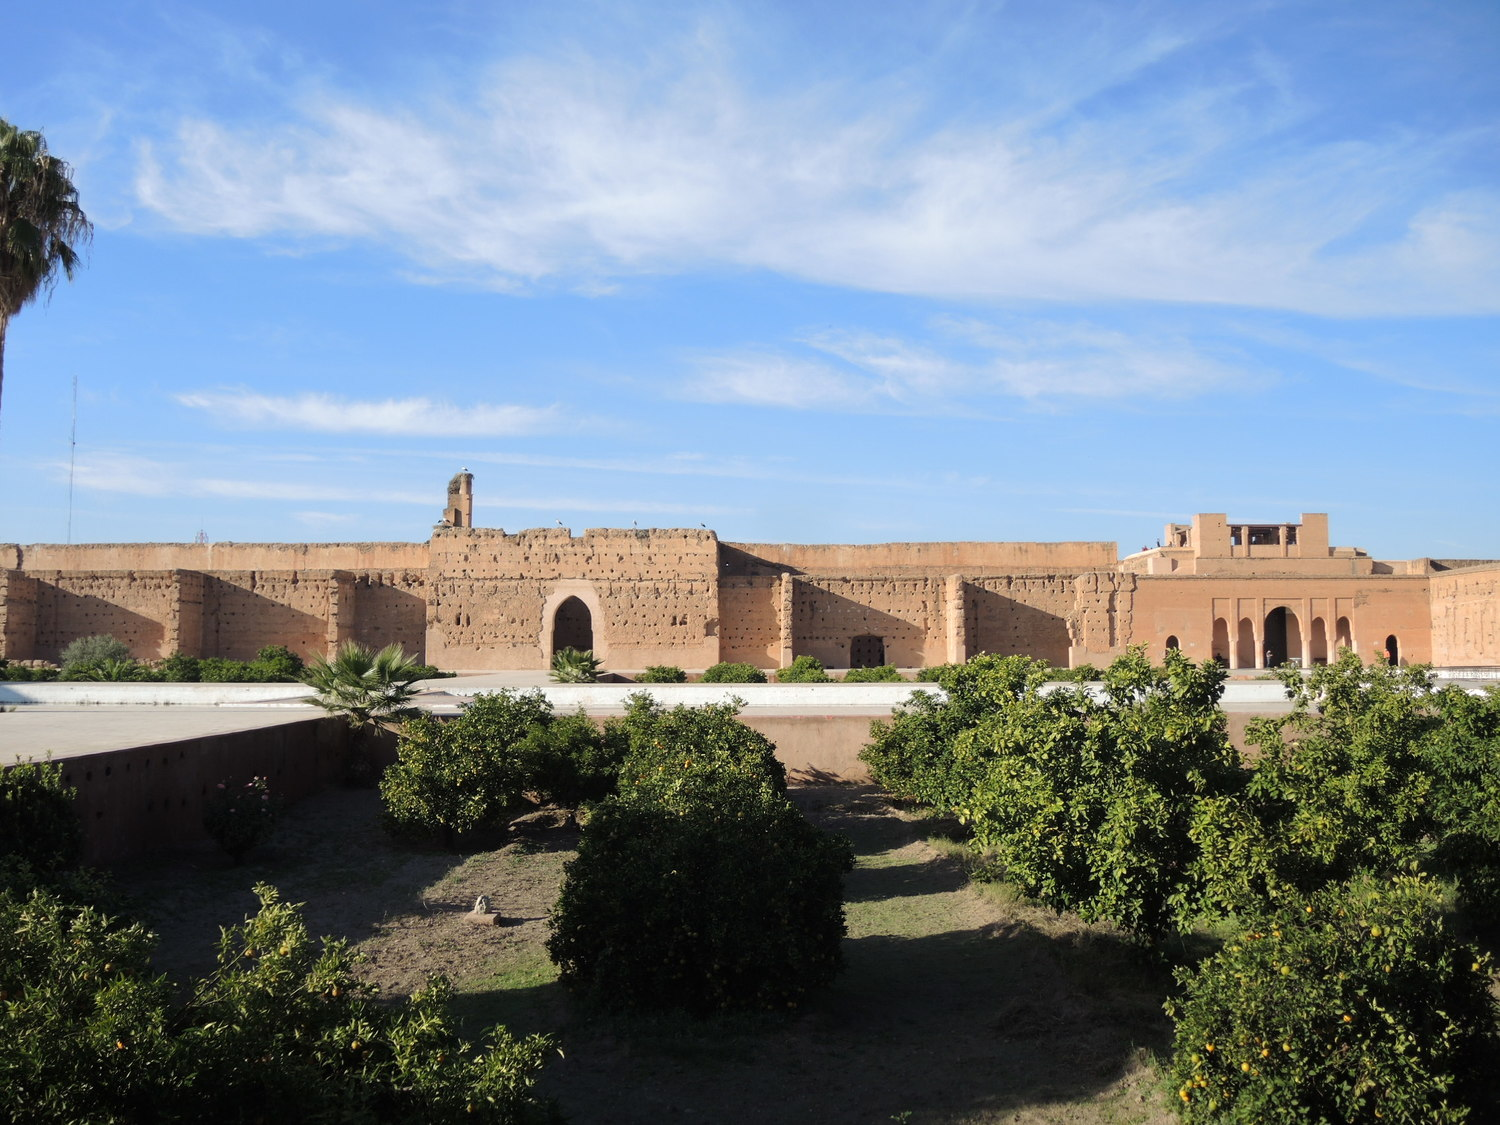 El Badi Palace in Marrakech